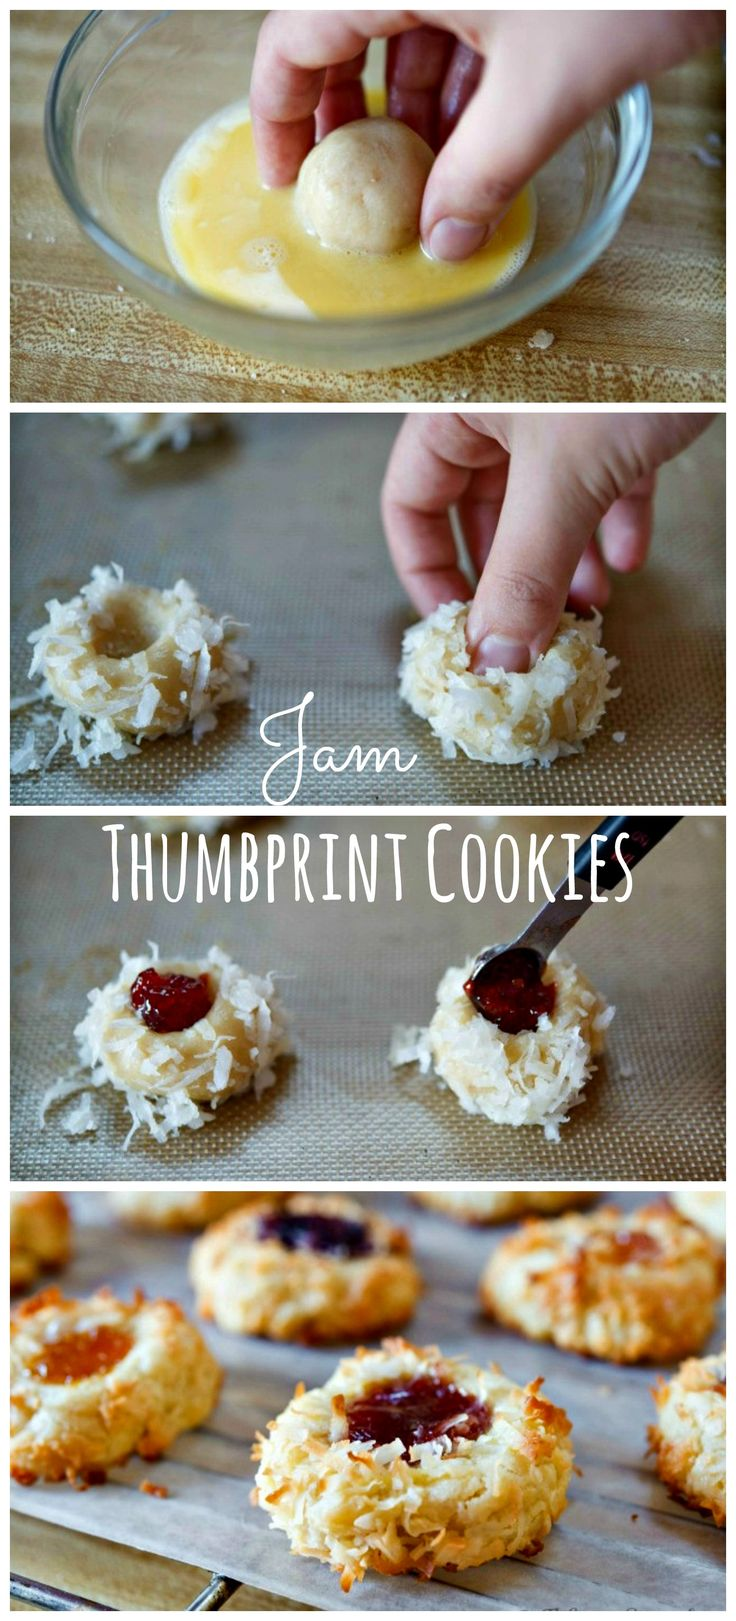 Jam Thumbprint Cookies. Learn step by step how to make these easy and festive cookies.